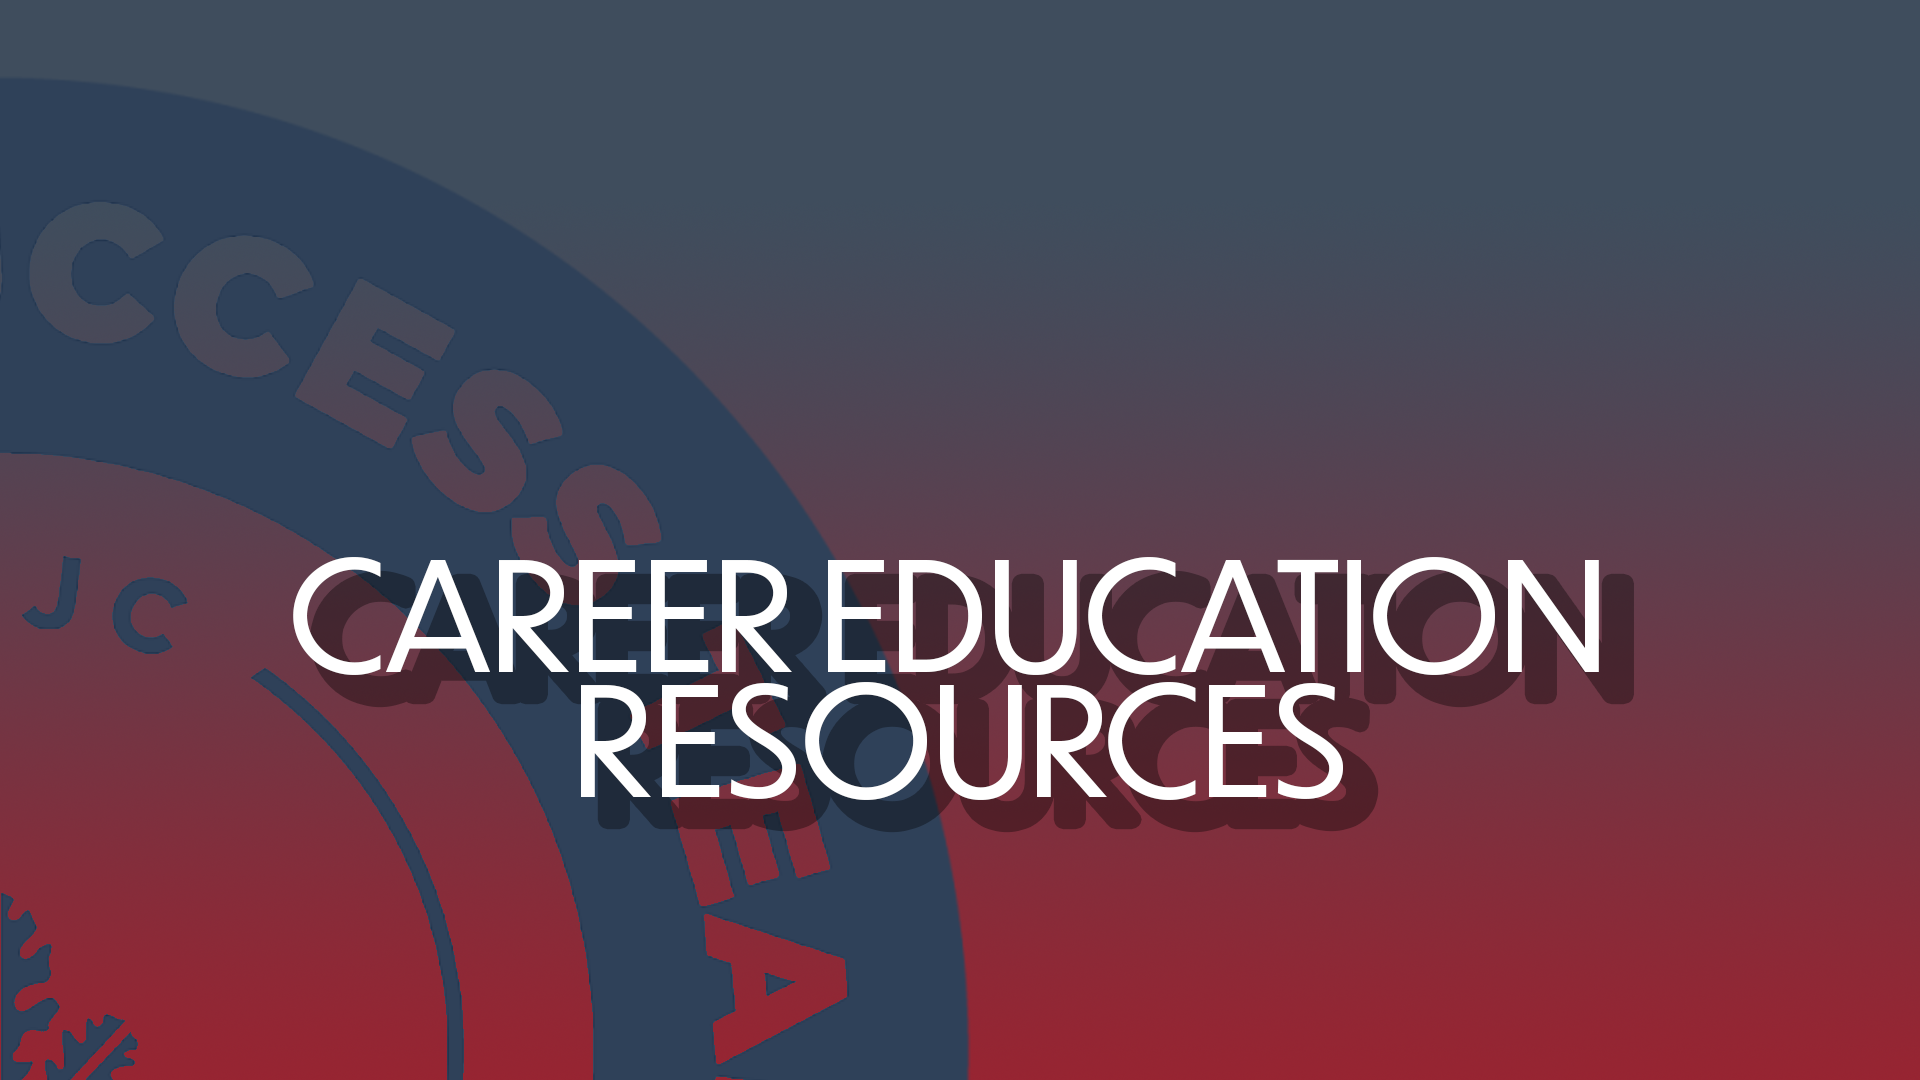 Career Education Resources